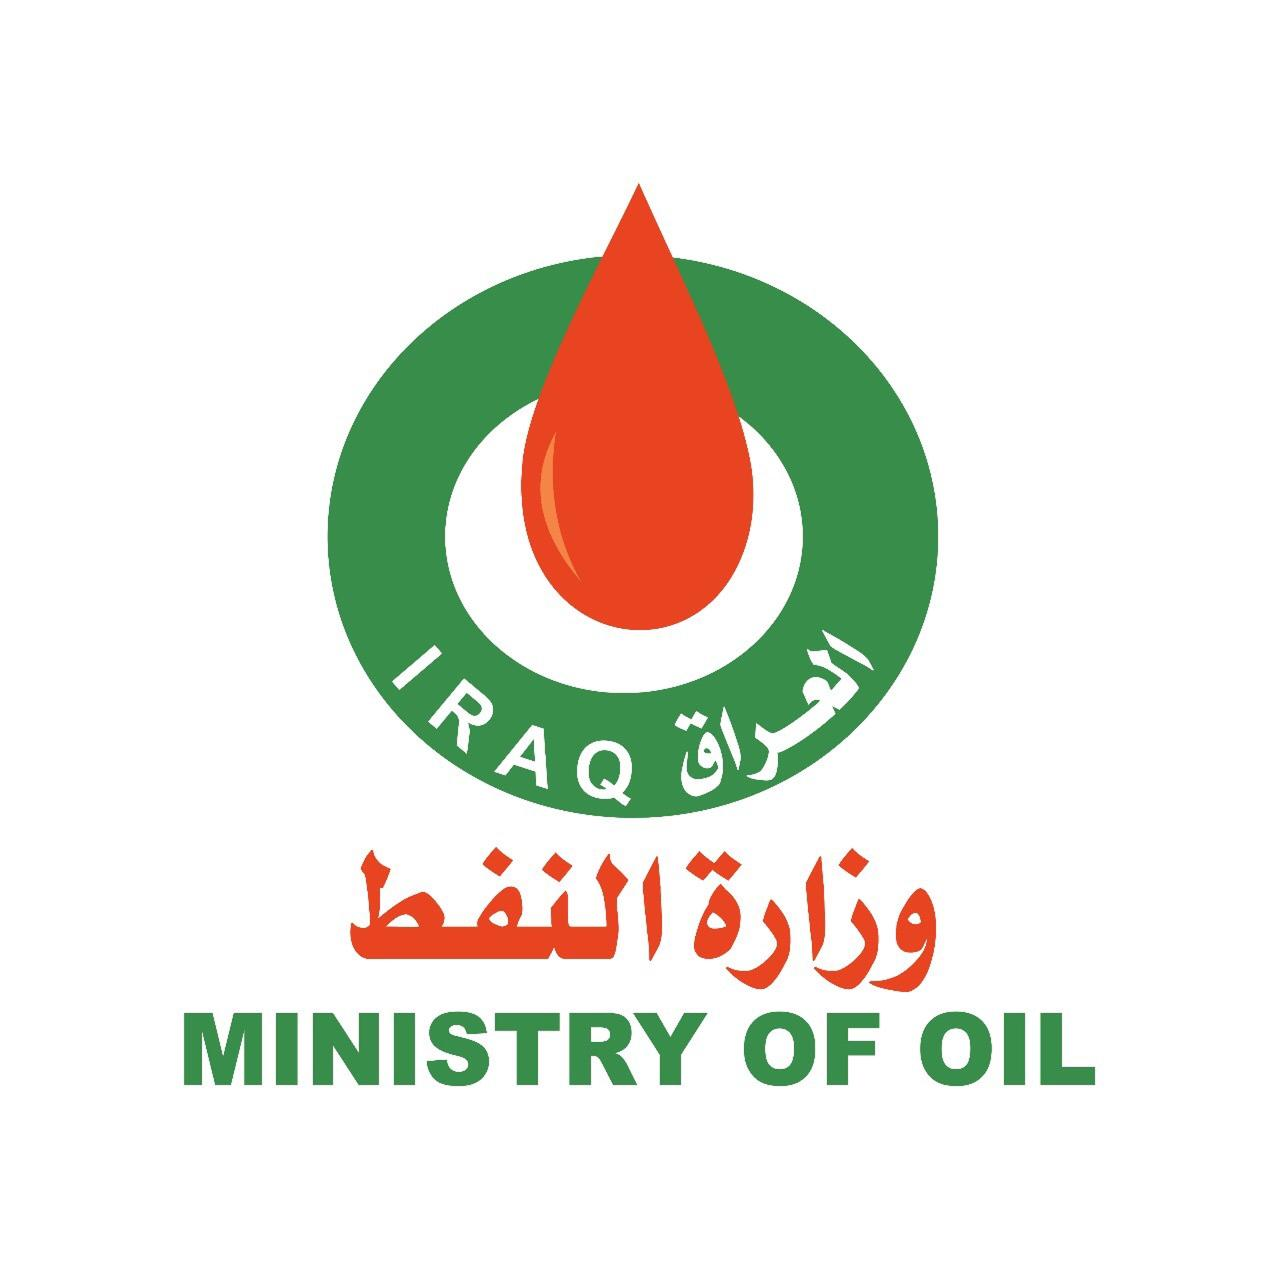 MINISTRY OF OIL - IRAQ